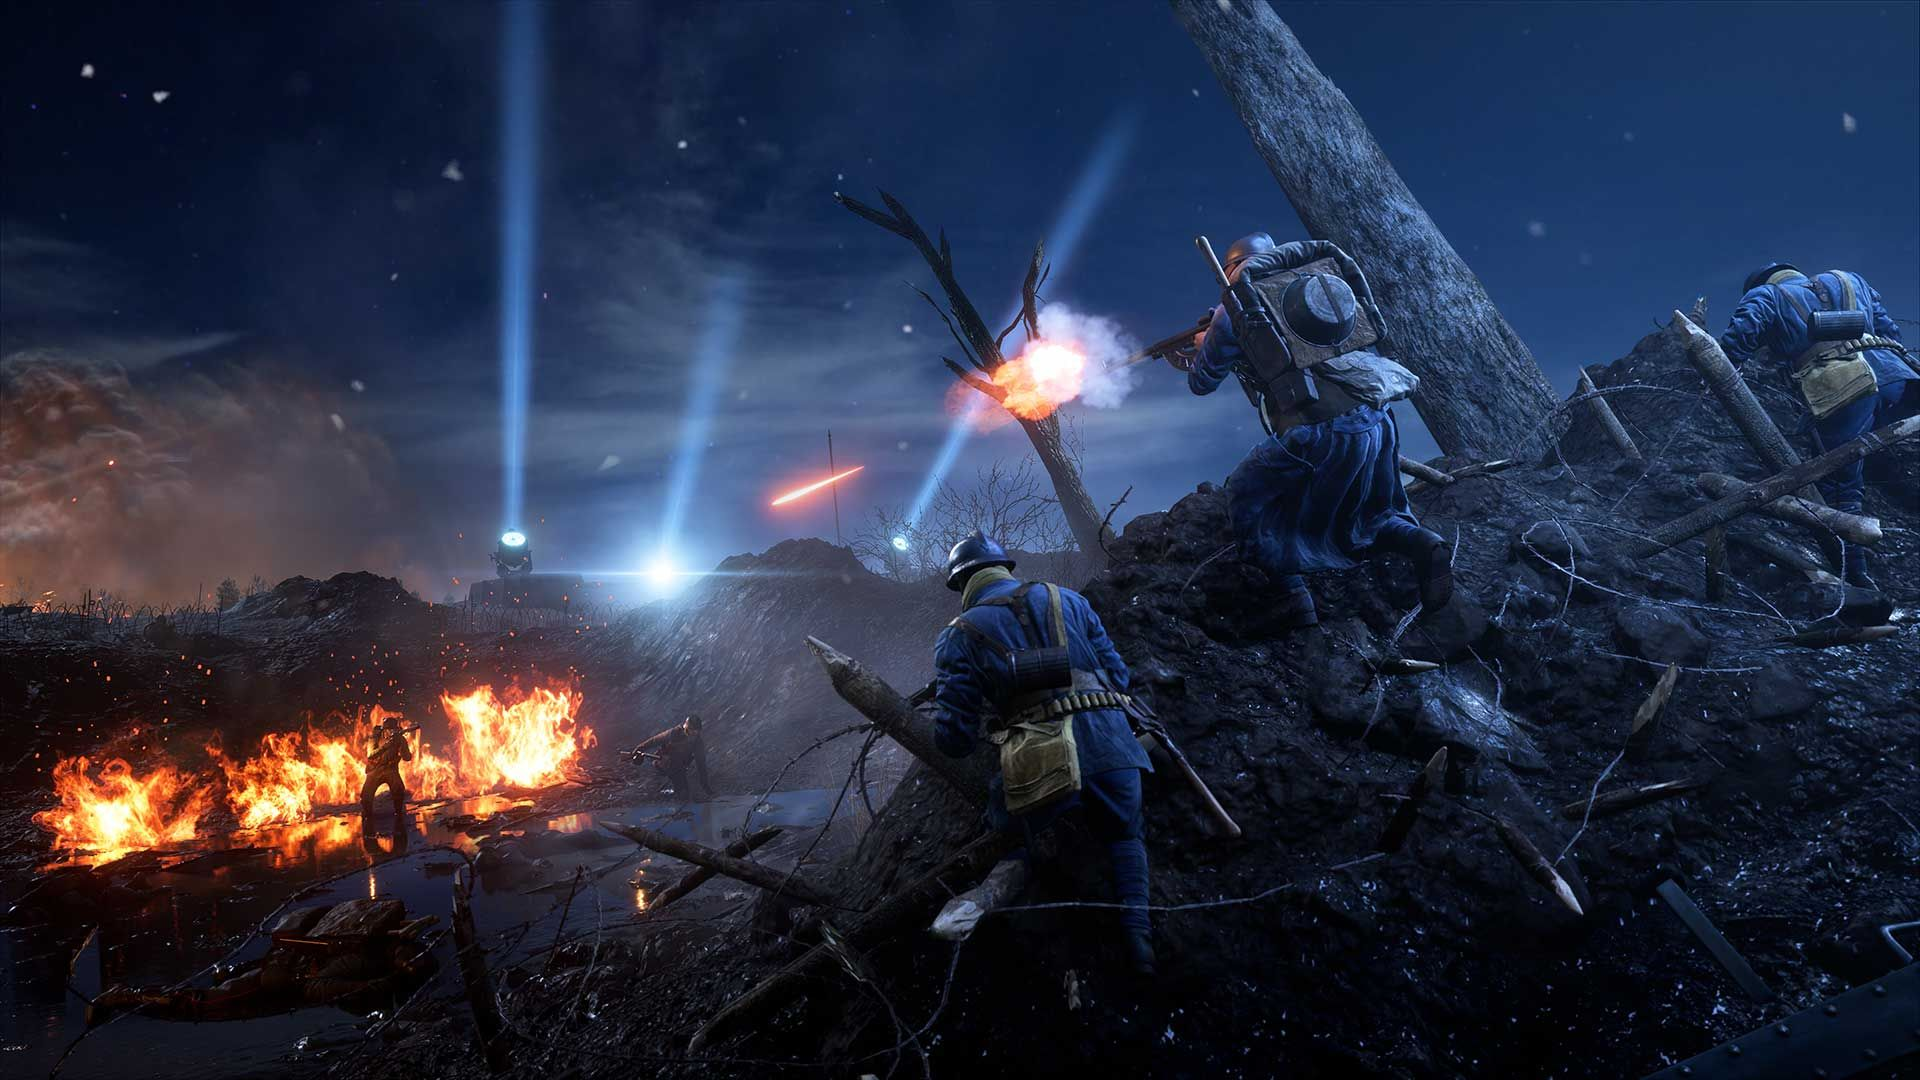 New Battlefield Reportedly Titled Battlefield V